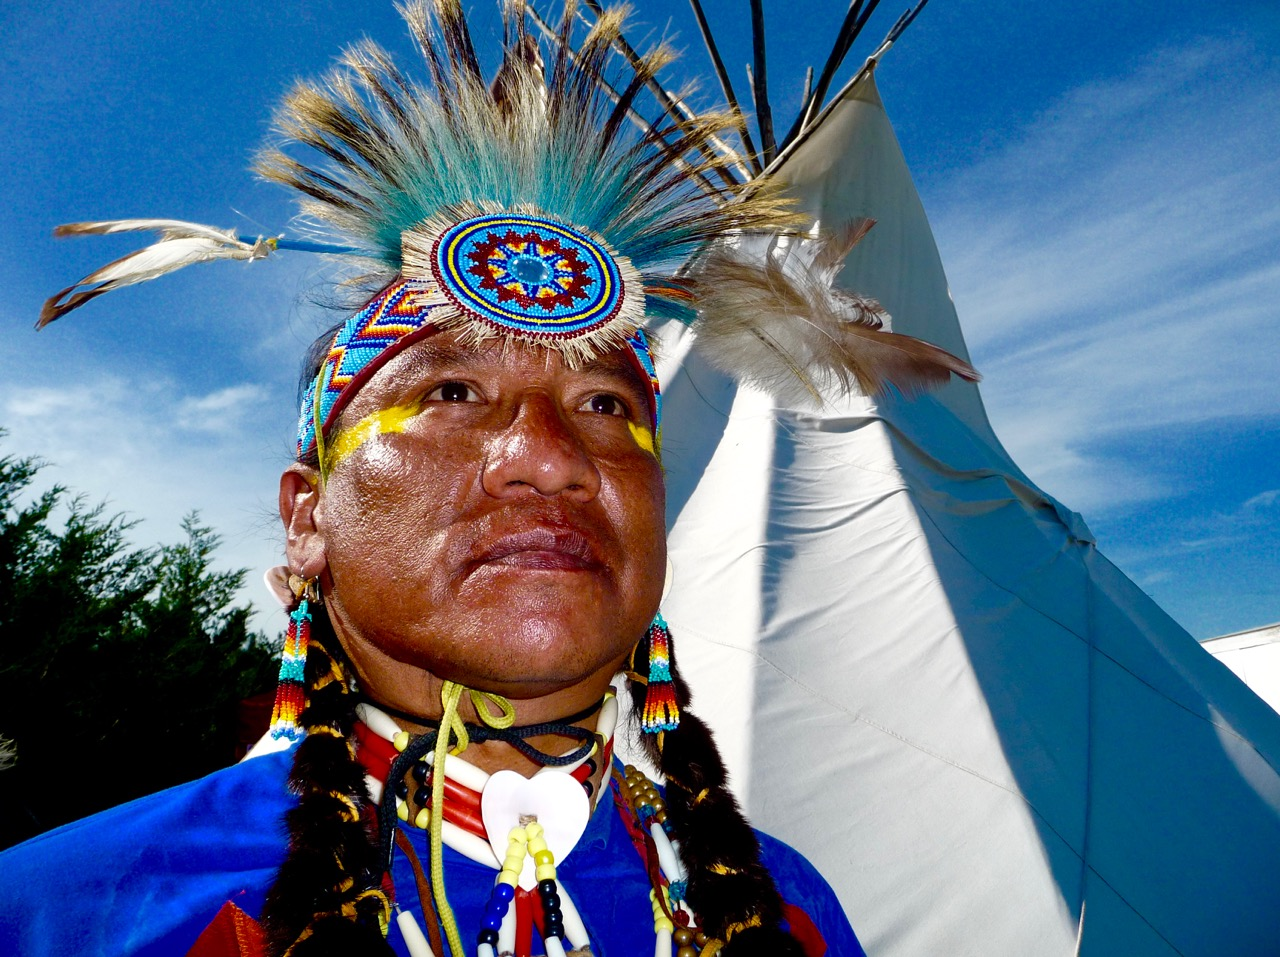 Gilbert Emery Brown, Meskwaki, Rosebud Powwow, South Dakota, United States of America, 2011.